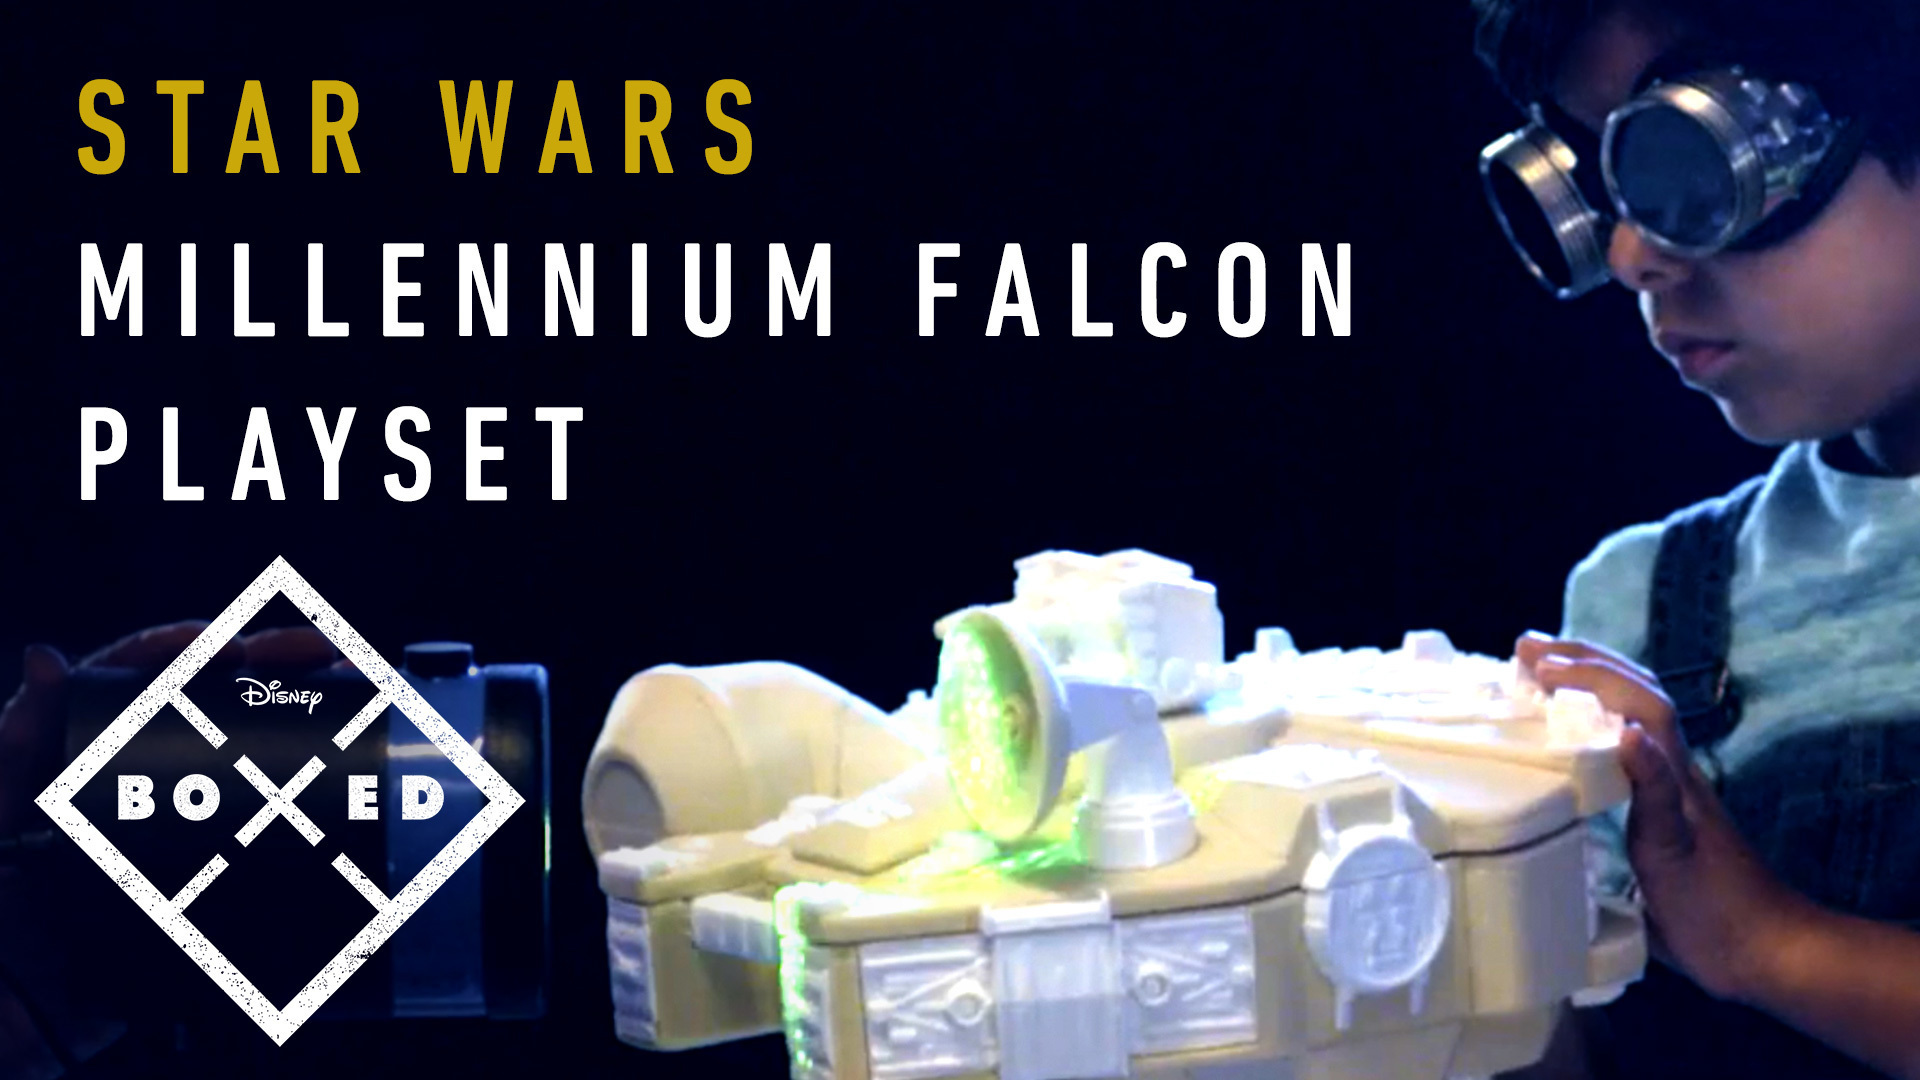 BOXED: CRAFTING A STAR WARS GALACTIC HEROES MILLENNIUM FALCON